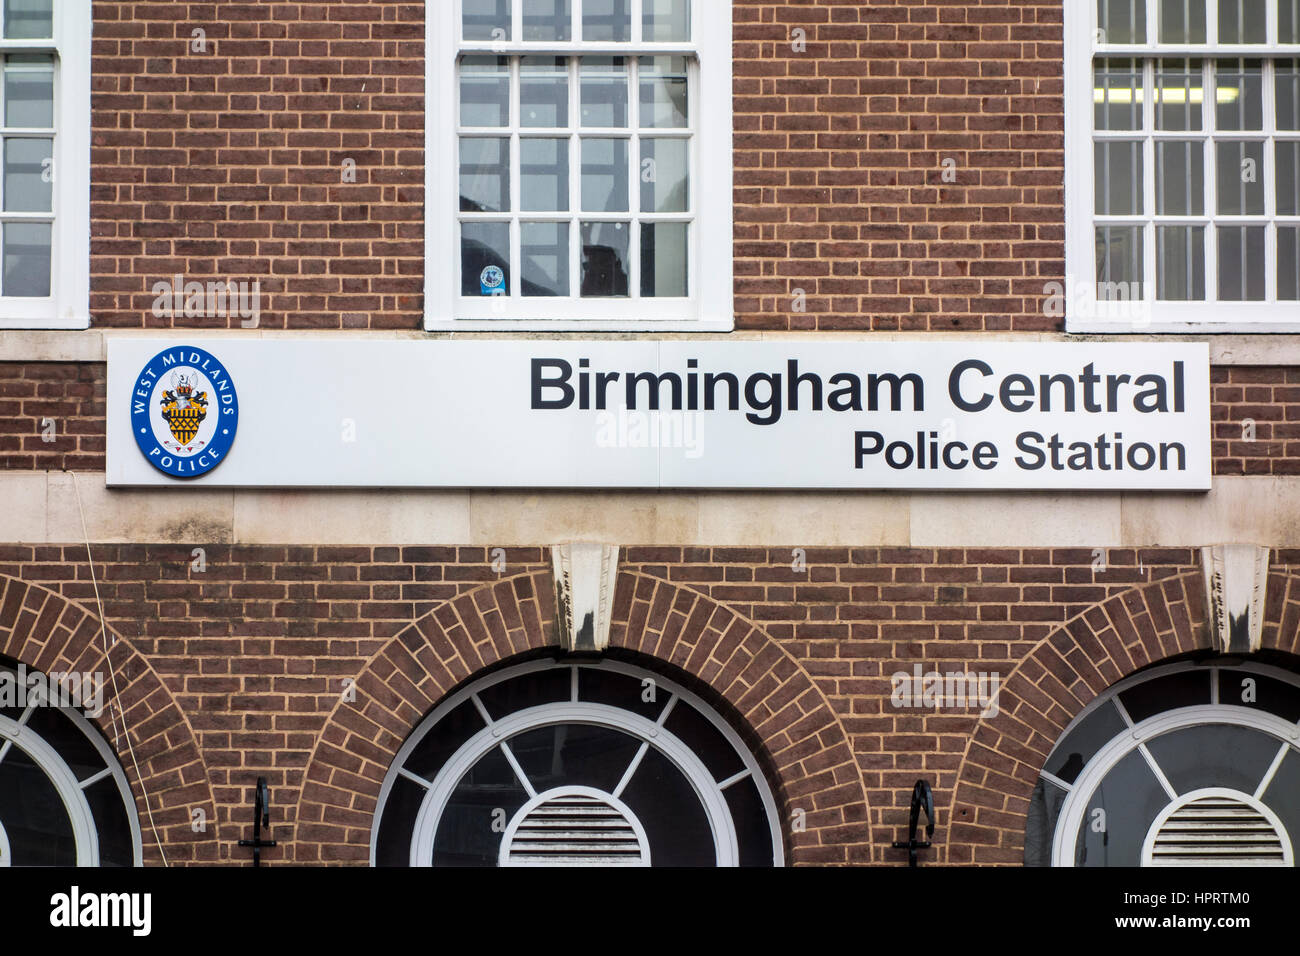 Birmingham Central Police Station, Birmingham, UK - Stock Image